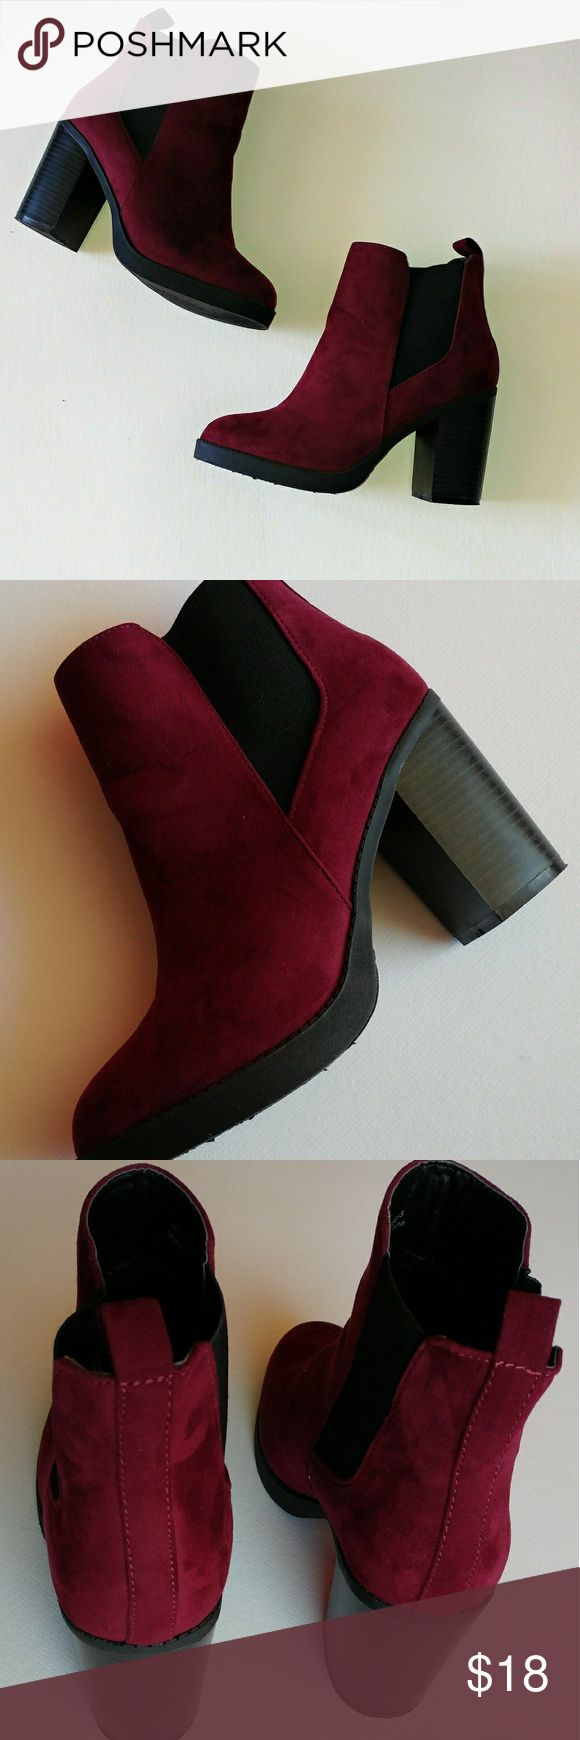 Atmosphere Heeled Ankle Boots Primark Atmosphere Burgundy Heeled Ankle Boots Heel Height: 3.75 inches Textile upper Rubber Sole Made in China  Like new, minor flaws Shoes Ankle Boots & Booties